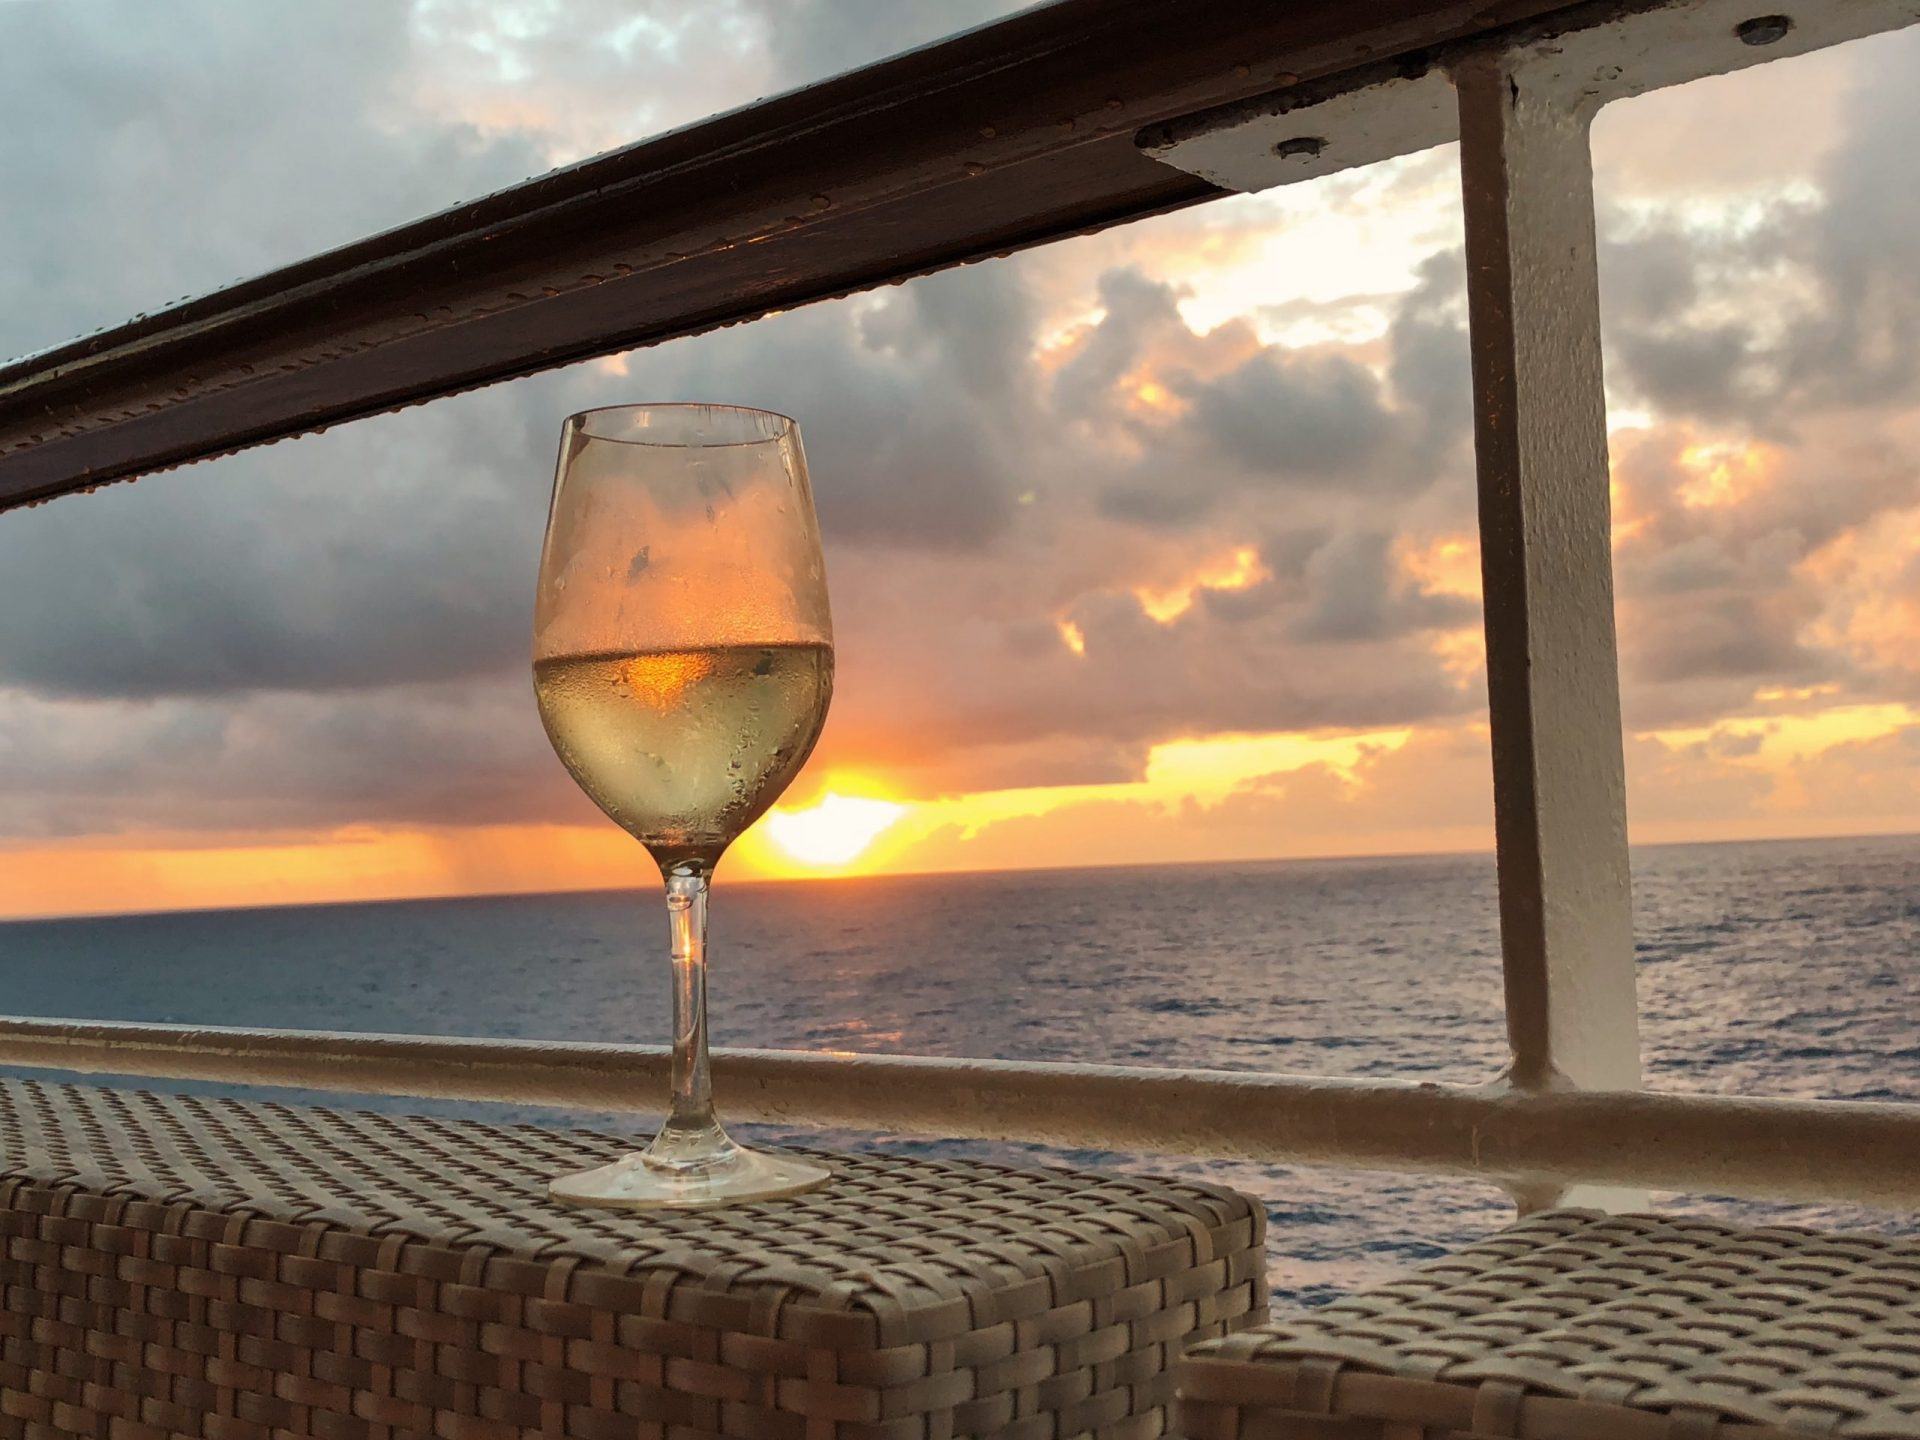 Enjoying a cold glass of white wine in your luxury yacht by the sea during a beautiful sunset | Luxury Homes by Brittany Corporation